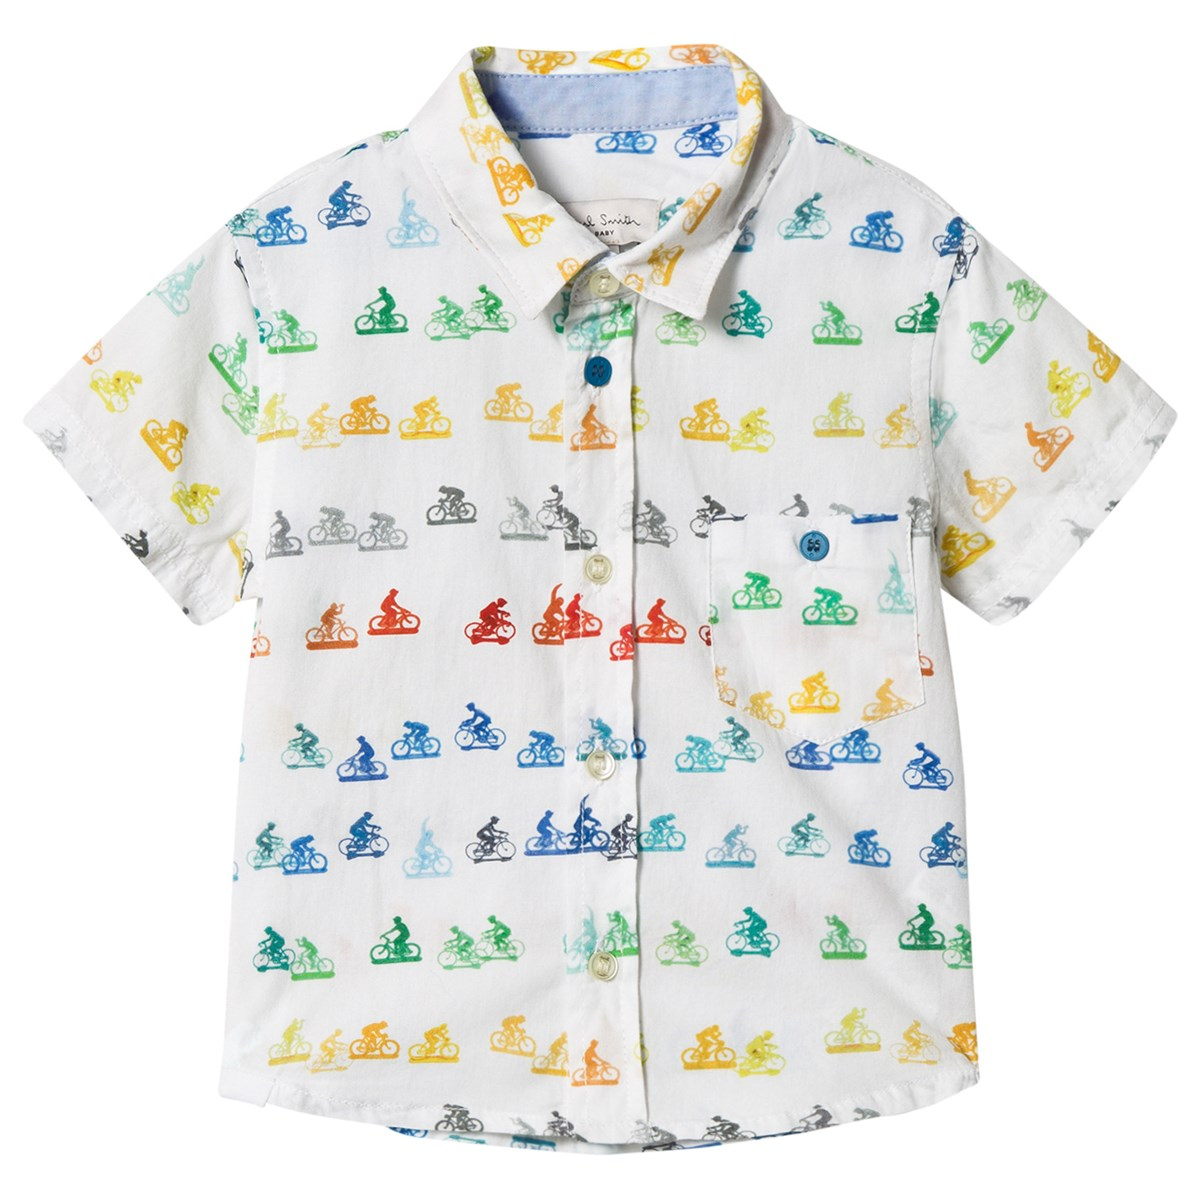 Paul smith junior boys bicycle shirt size 3 and 5 in great condition